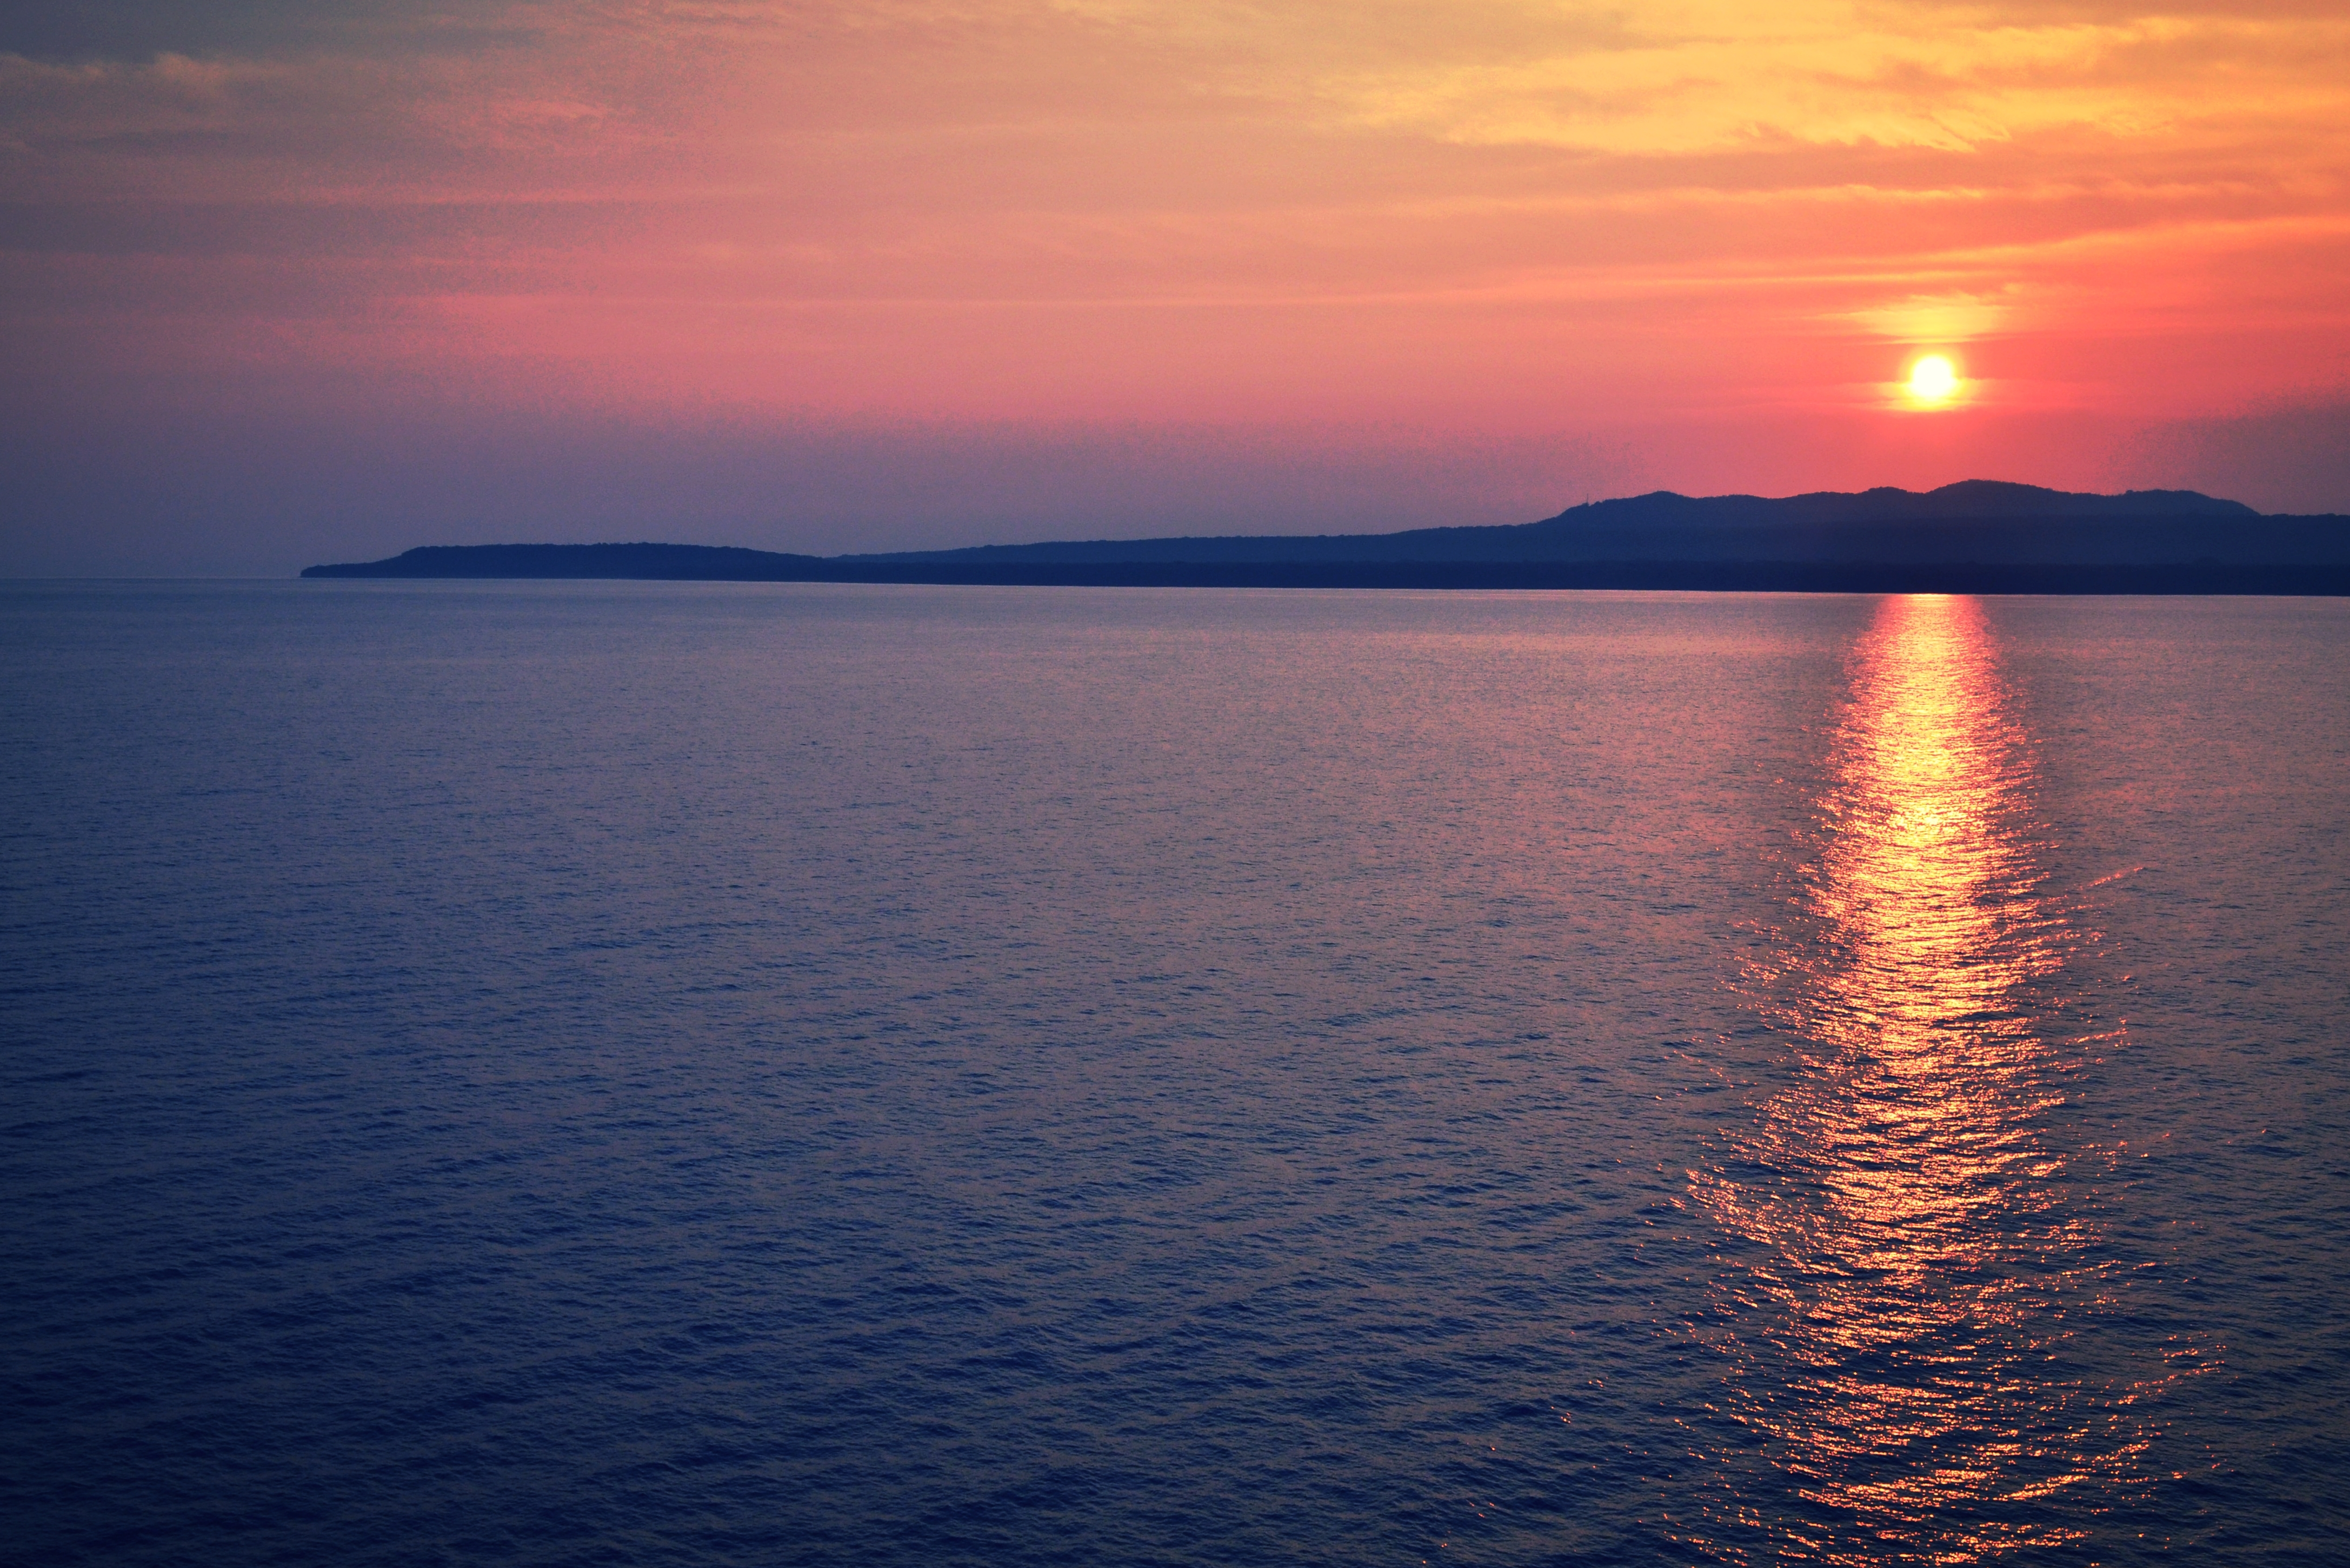 156960 download wallpaper Nature, Sea, Sunset, Horizon screensavers and pictures for free